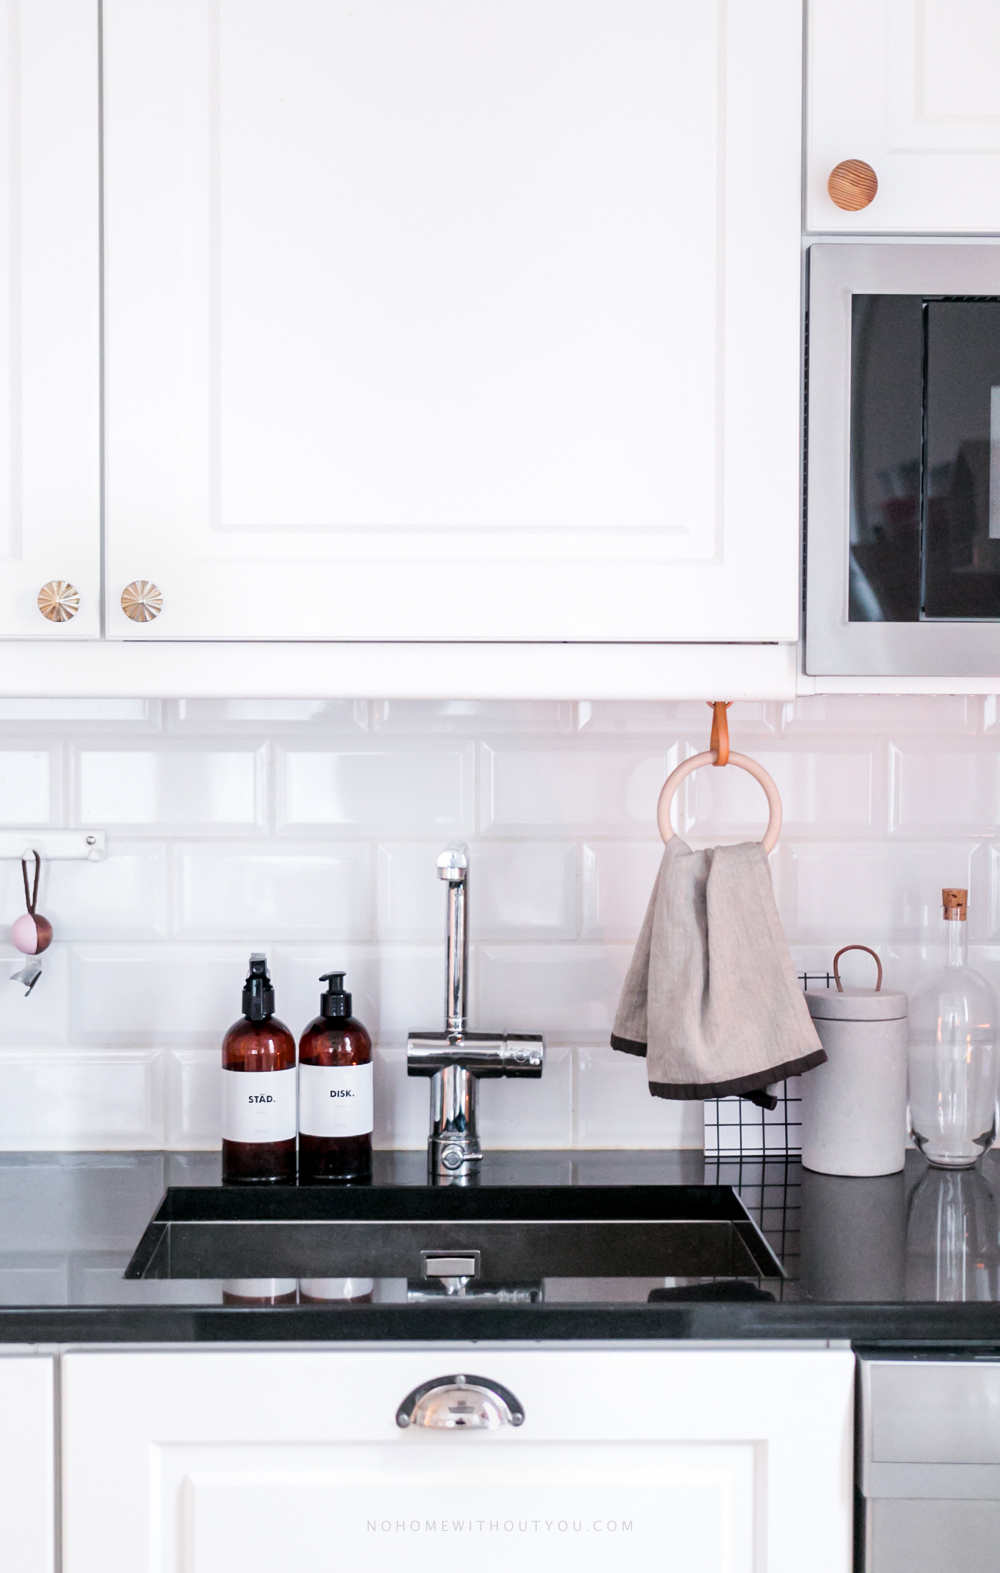 DIY kitchen towel hanger - No Home Without You blog (3 of 3)